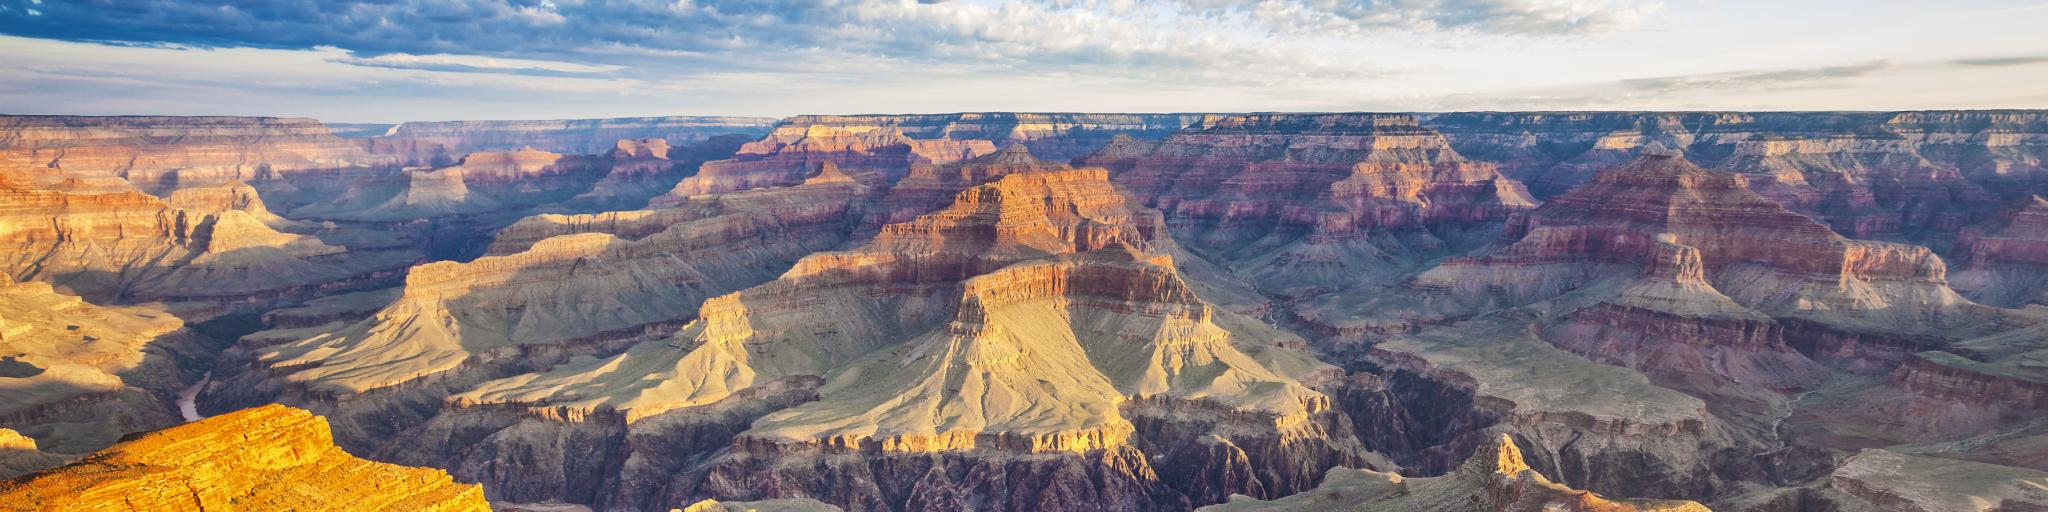 A breathtaking view of the Grand Canyon illuminated by the morning light with a cloudy sky